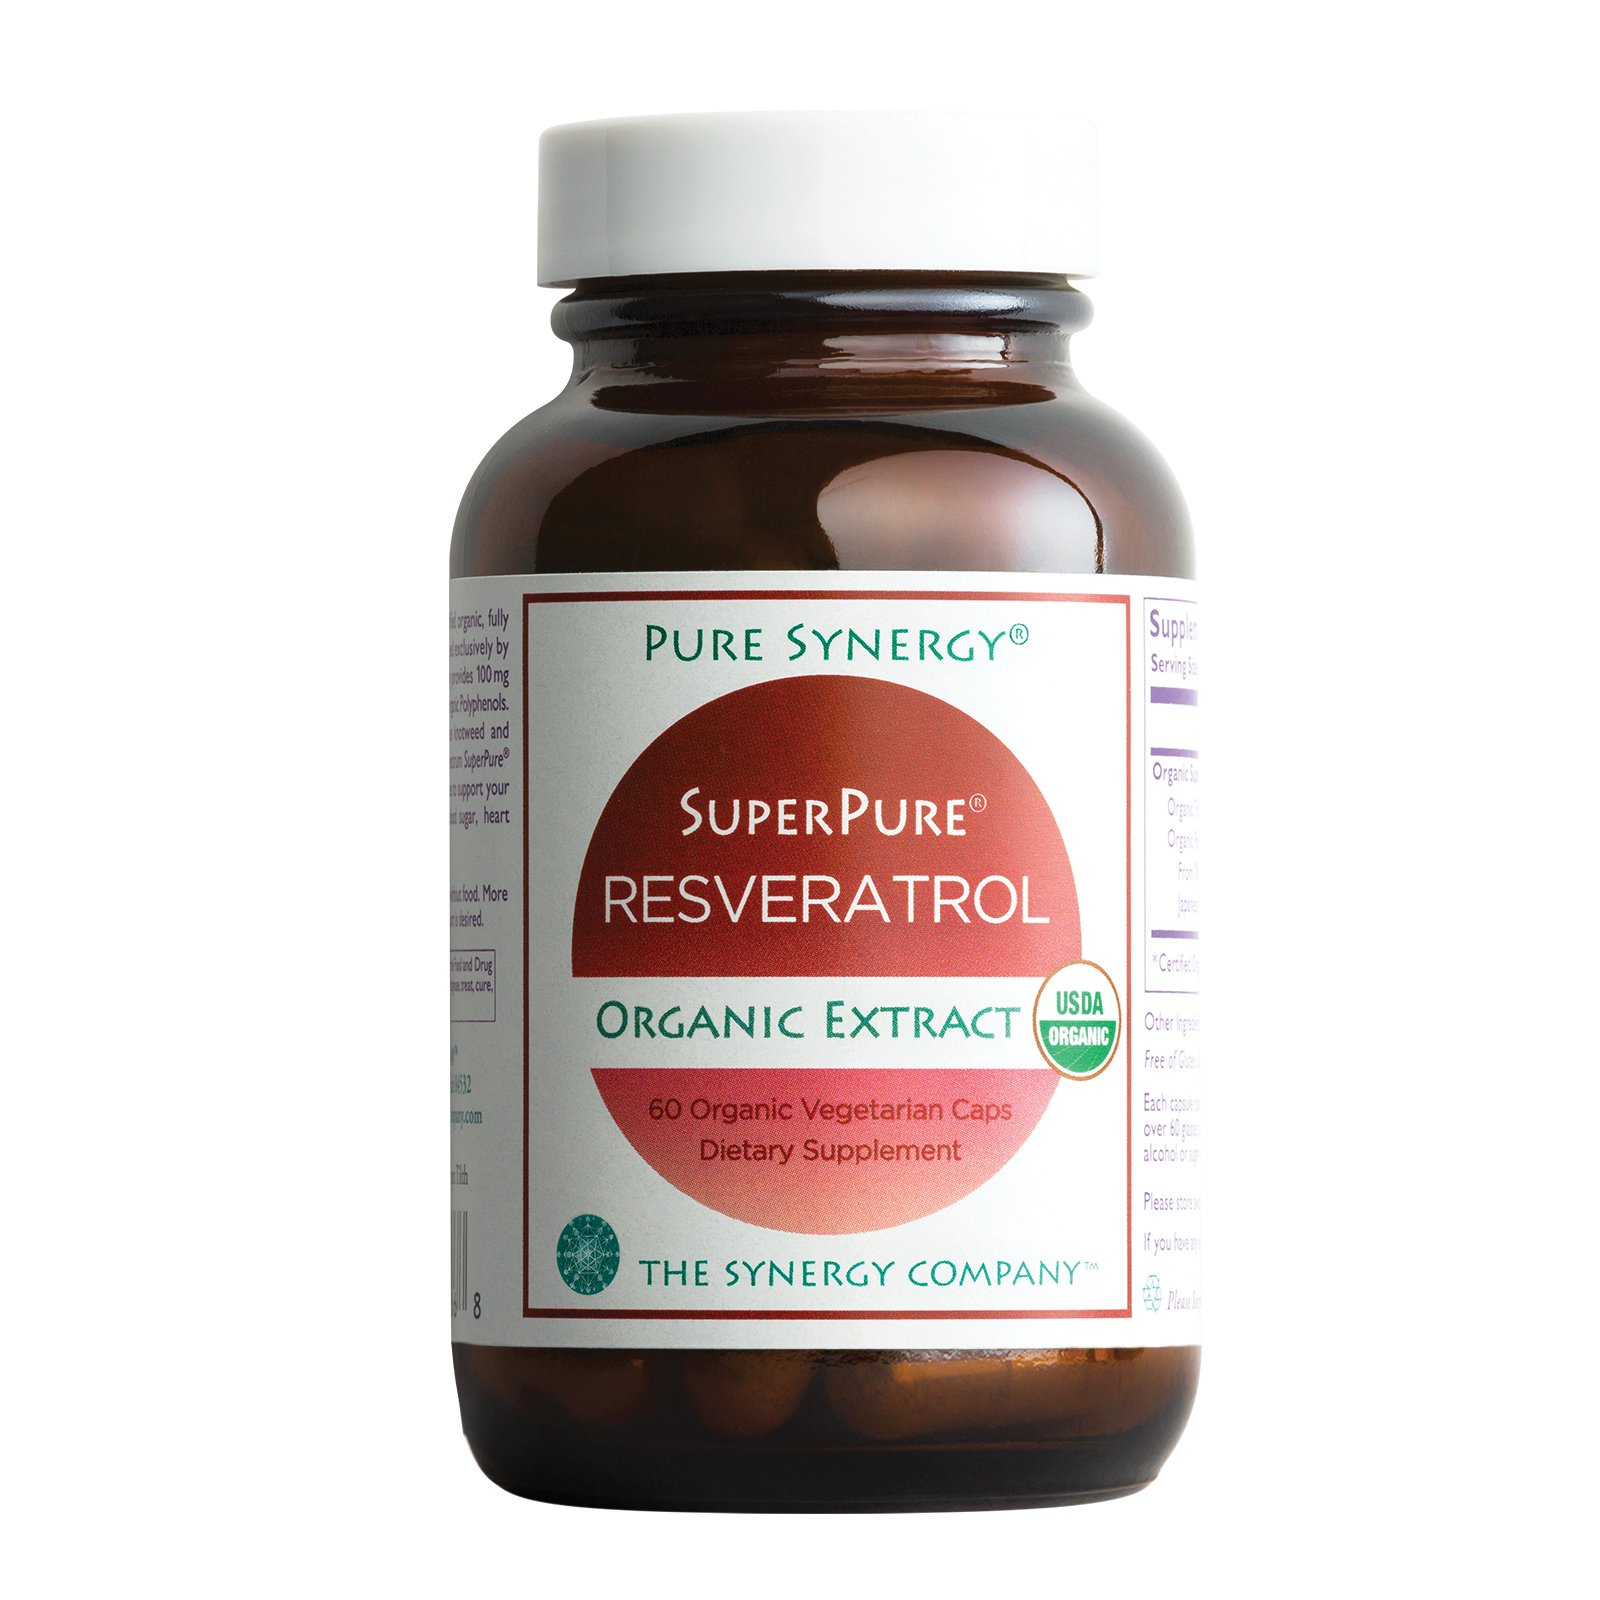 Pure Synergy USDA Organic SuperPure Resveratrol (60 Capsules) w/Trans Resveratrol for Healthy Aging by Pure Synergy